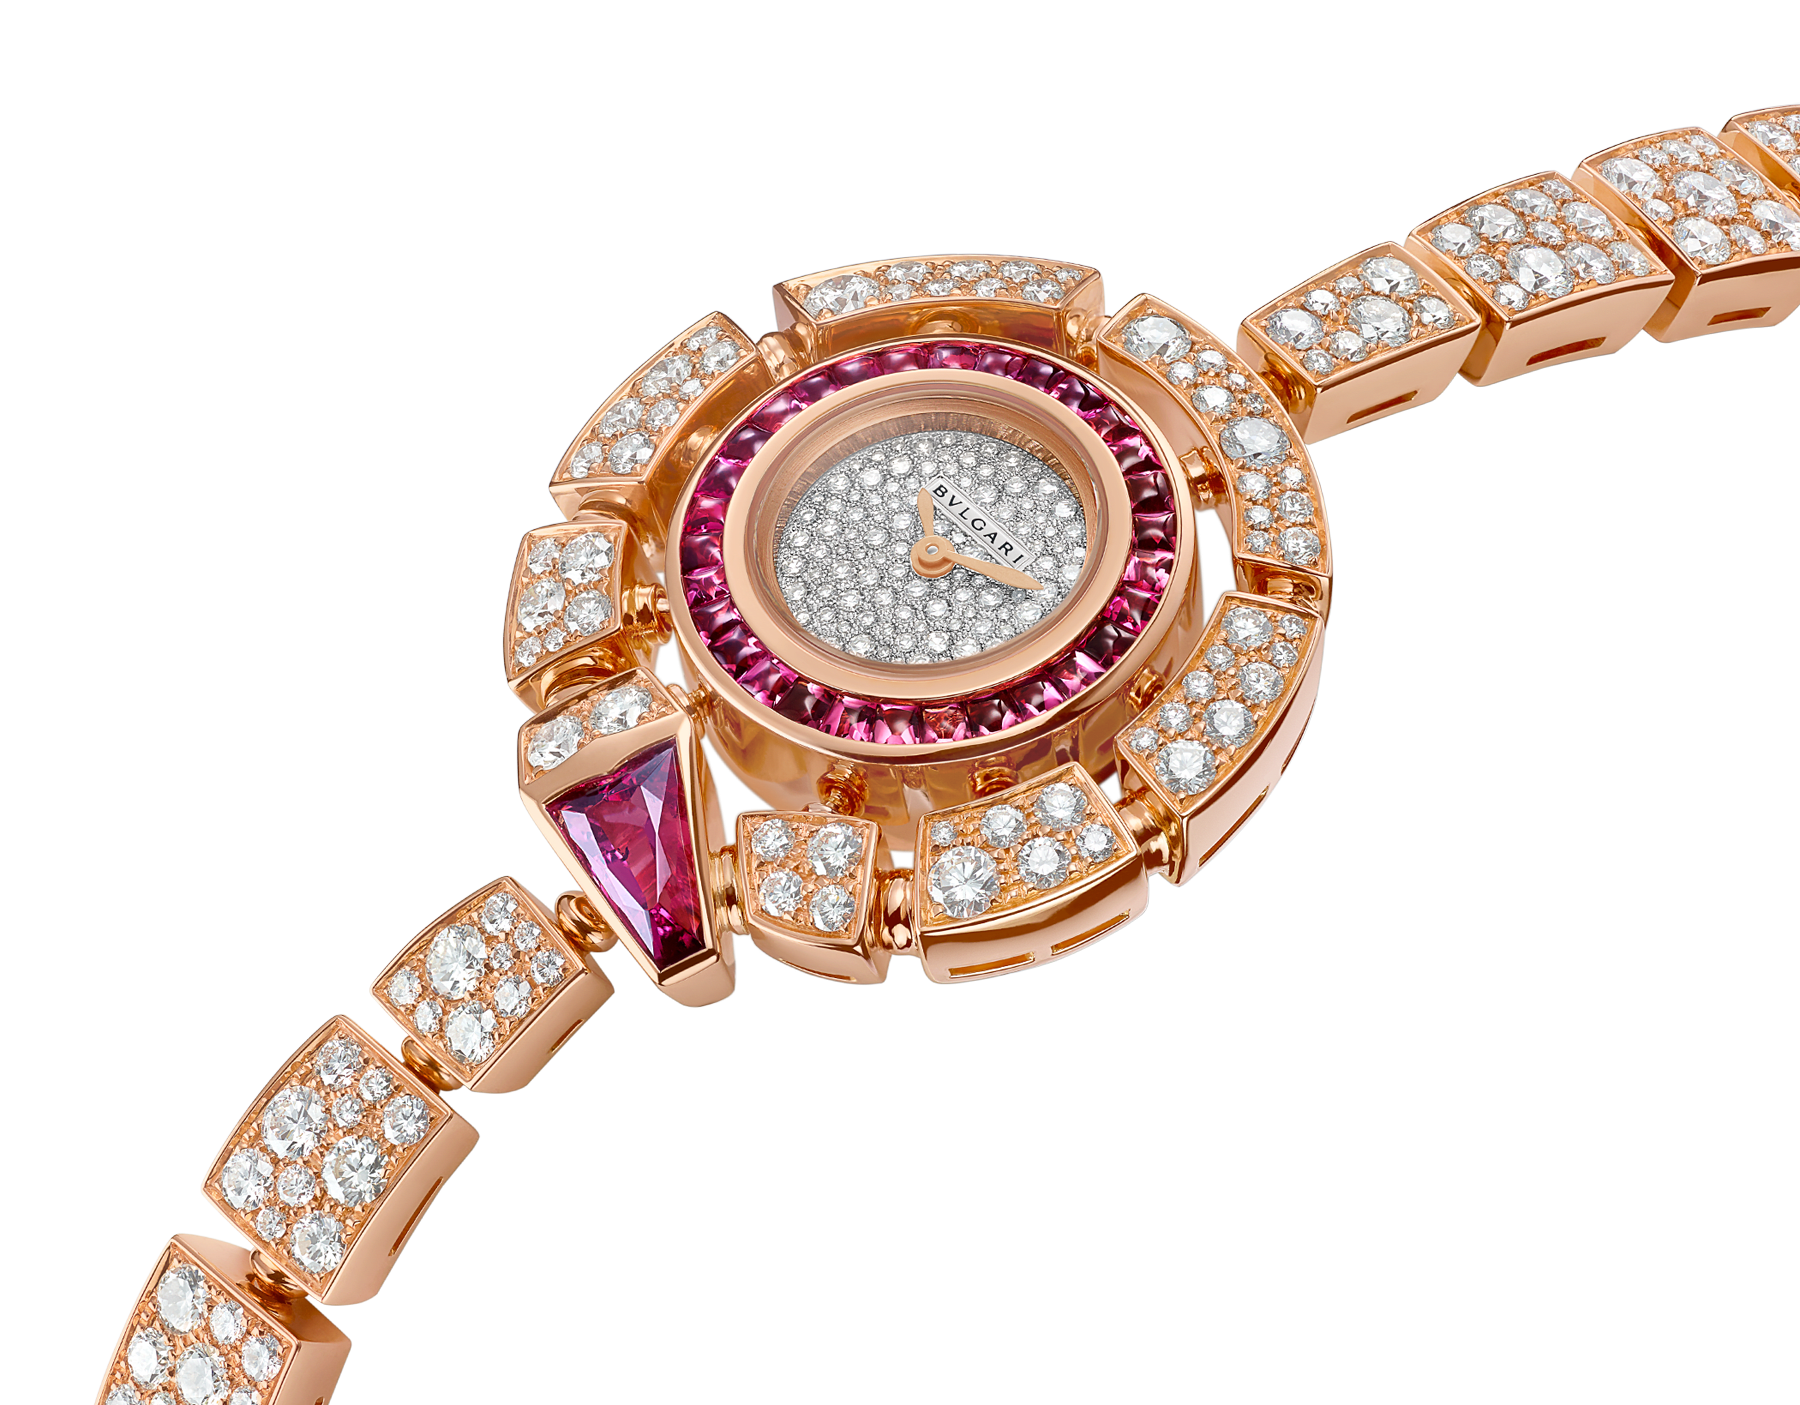 Montre Serpenti Incantati avec boîtier de 30 mm en or rose 18 K serti de diamants taille brillant et rubellites, cadran pavé diamants en serti « neige », bracelet en or rose 18 K serti de diamants taille brillant. 102536 image 2